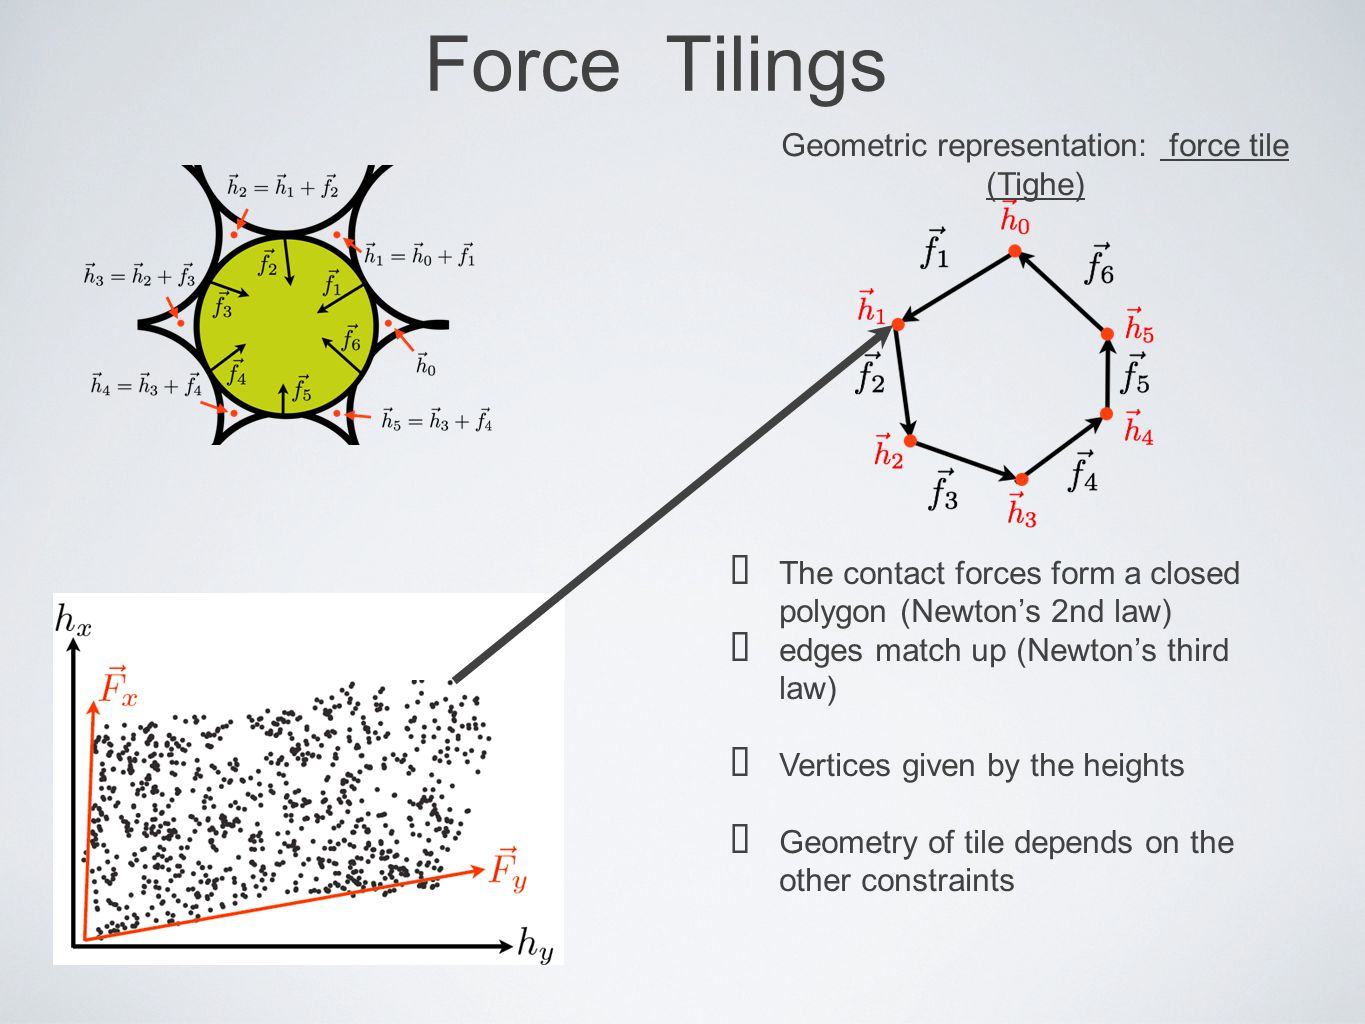 Force Tilings Geometric representation: force tile (Tighe) ★ The contact forces form a closed polygon (Newton's 2nd law) ★ edges match up (Newton's th